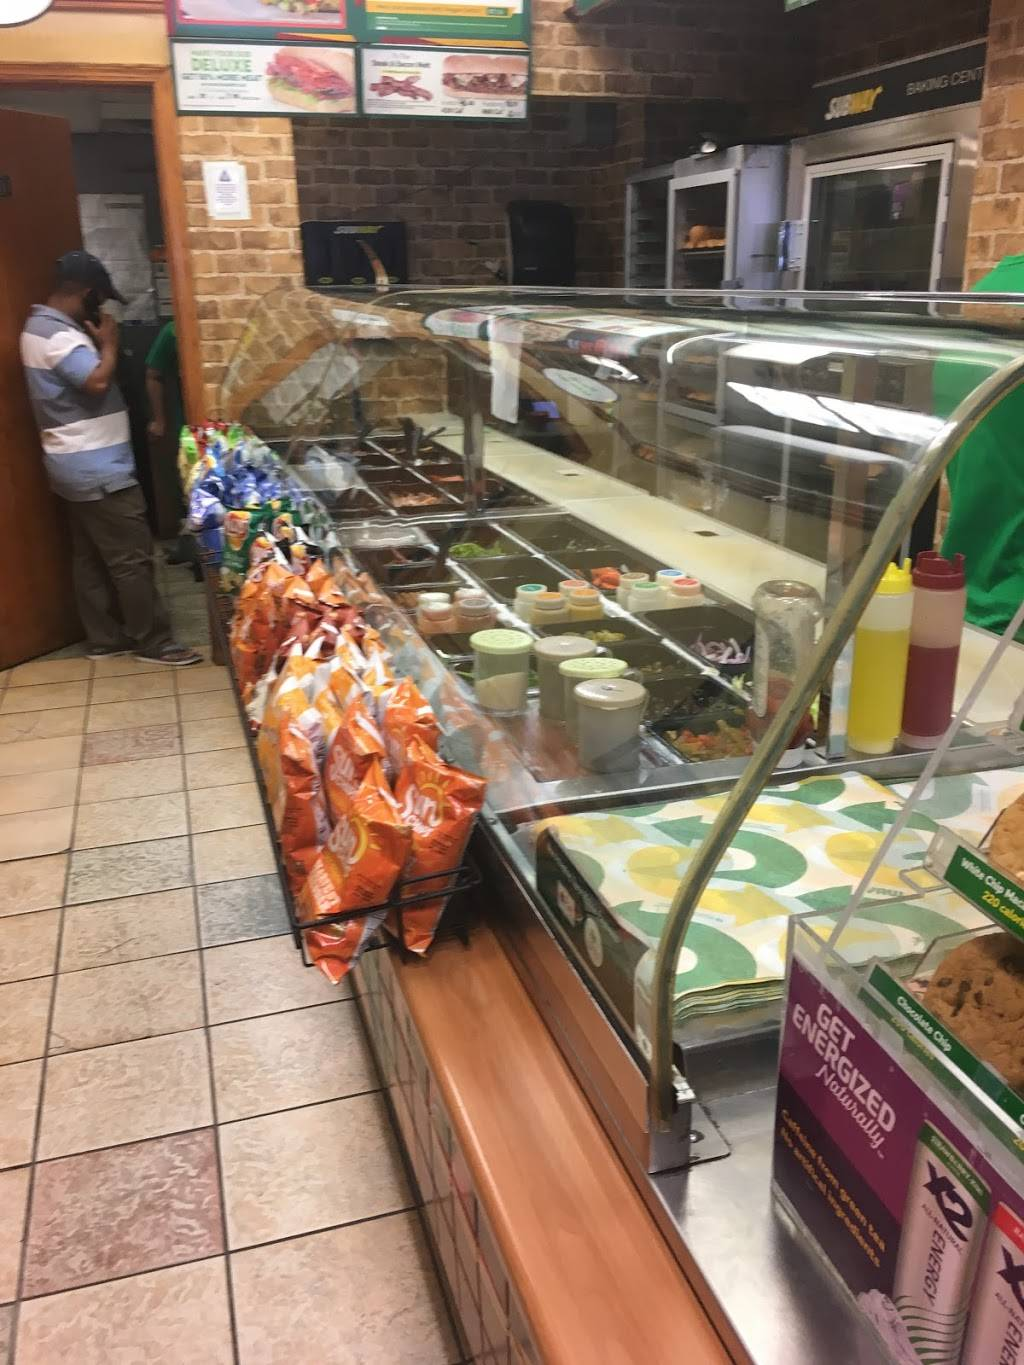 Subway | restaurant | 873 Seventh Avenue, 162 W 56th St Store 1, New York, NY 10019, USA | 2123155488 OR +1 212-315-5488